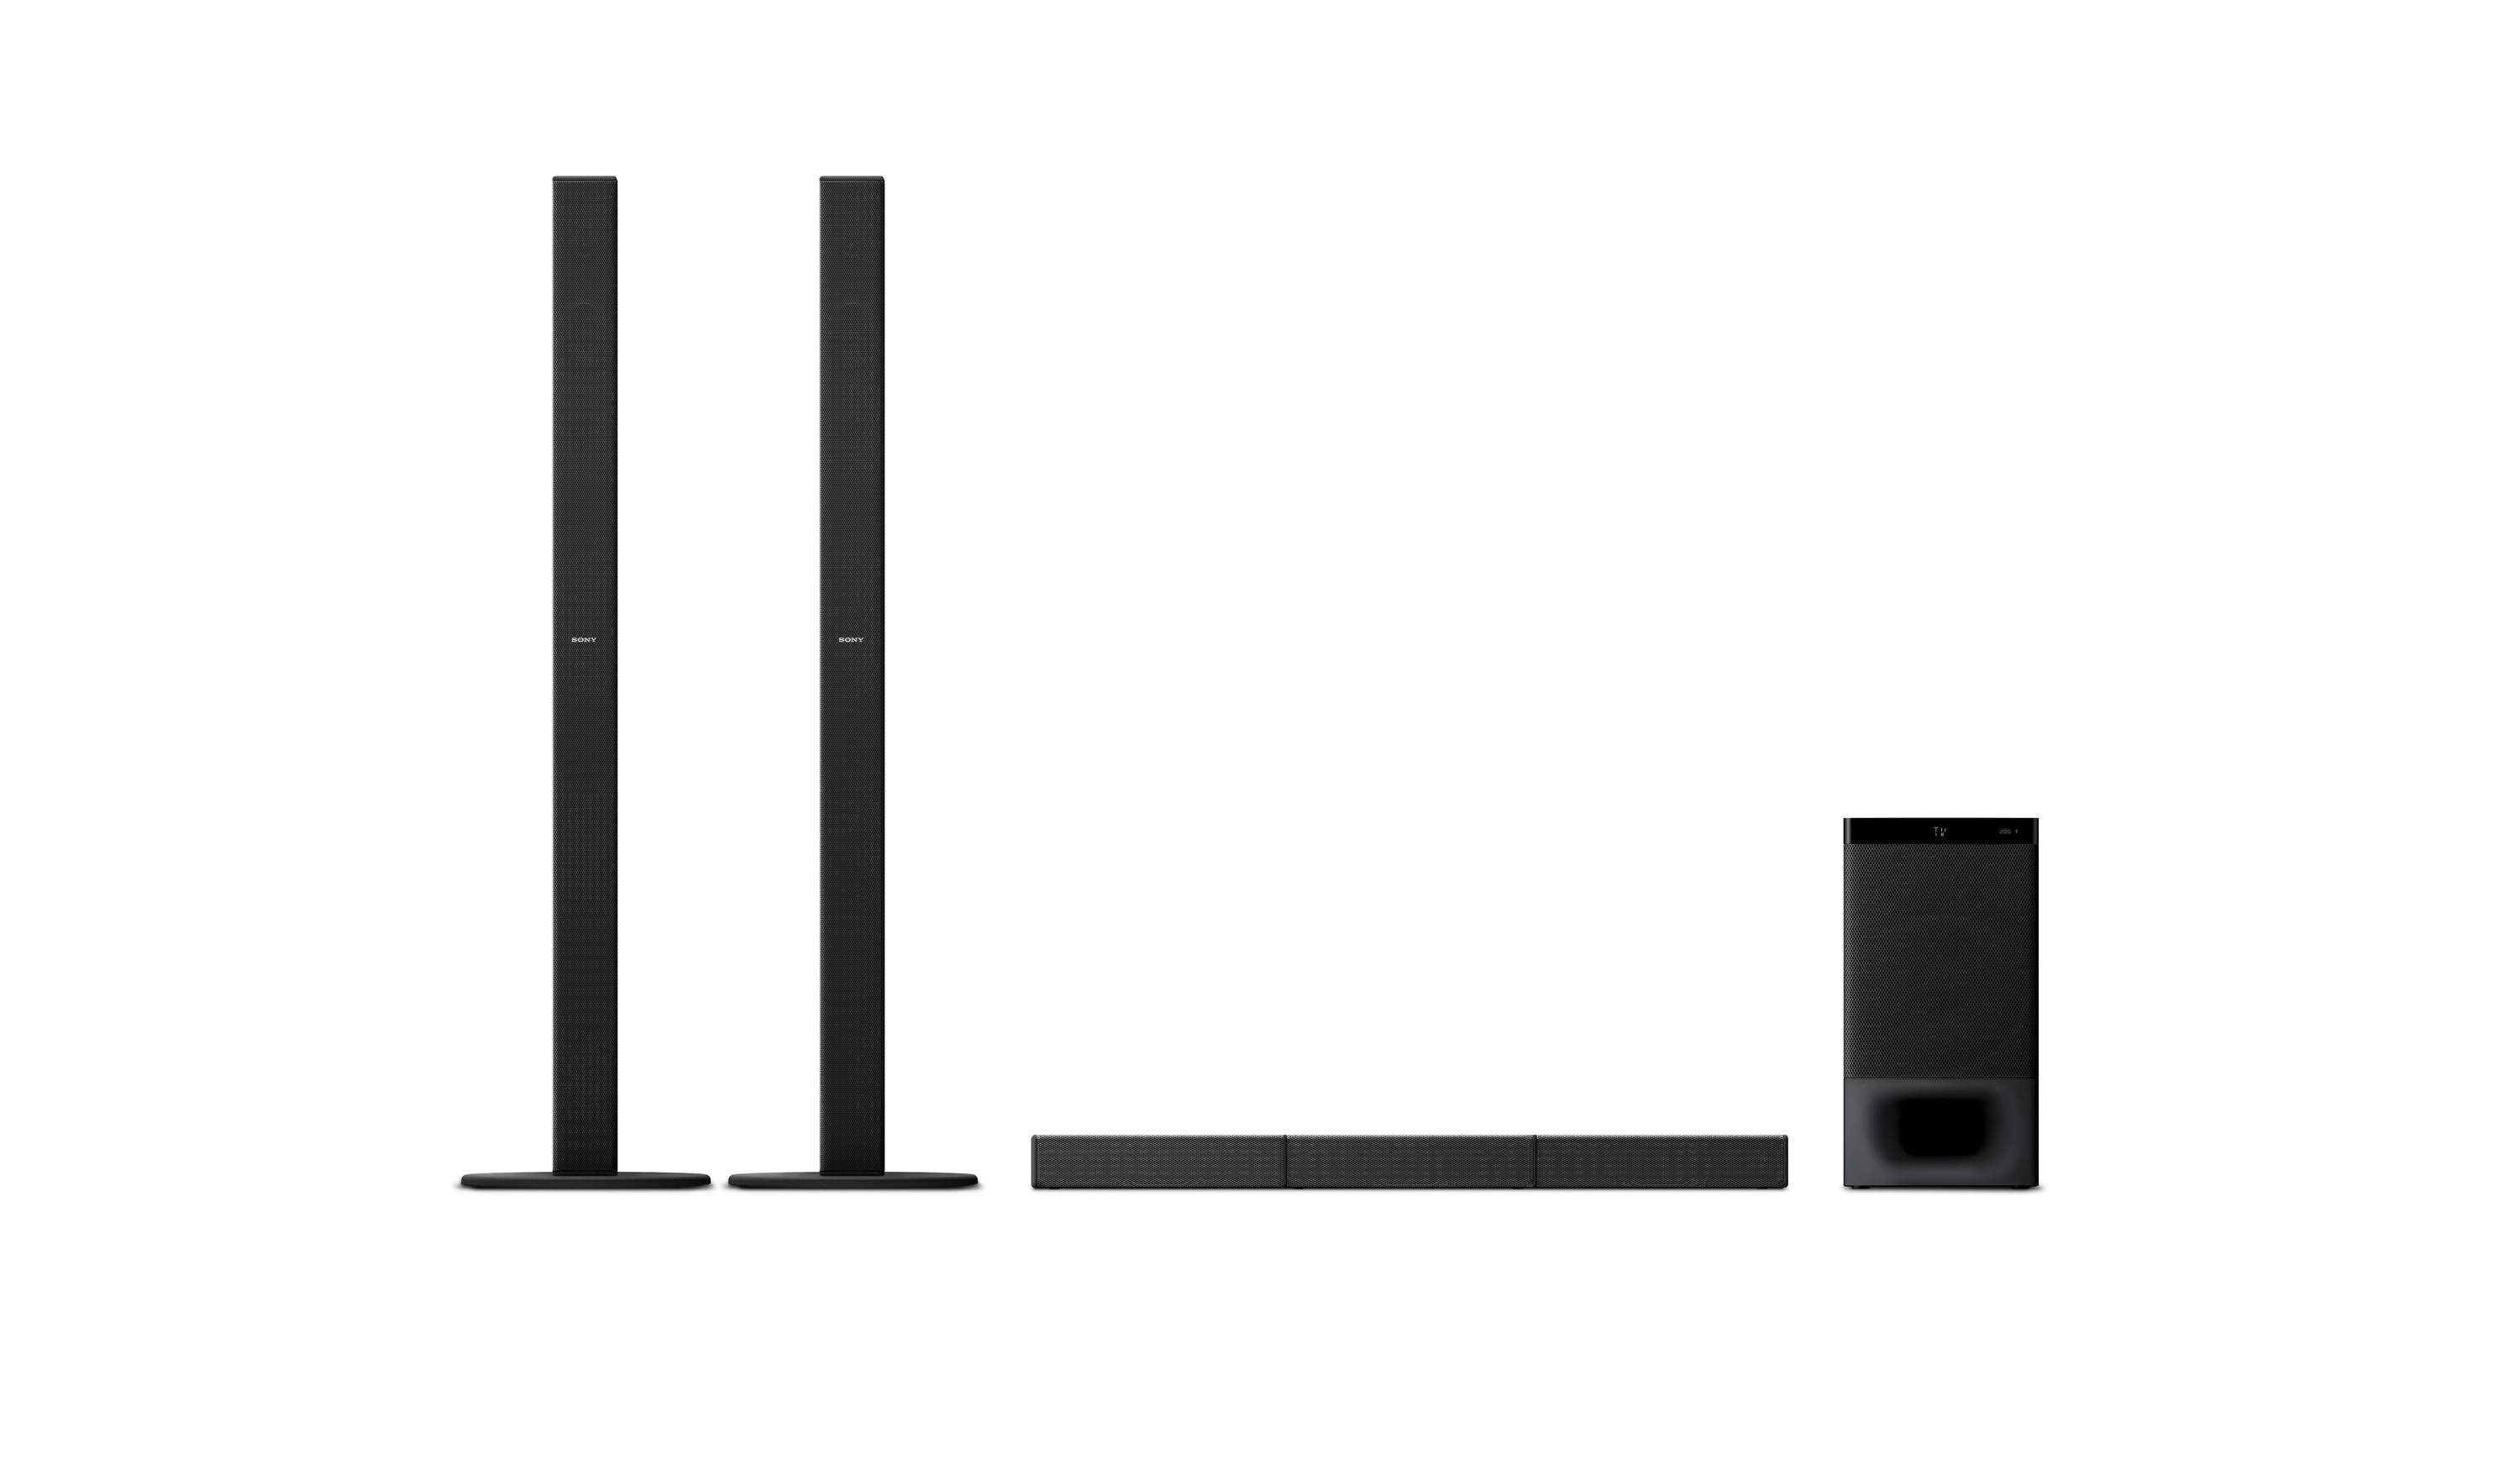 Sony introduces 5.1 channel Soundbar Home Theatre Systems HT-S700RF & HT-S500RF